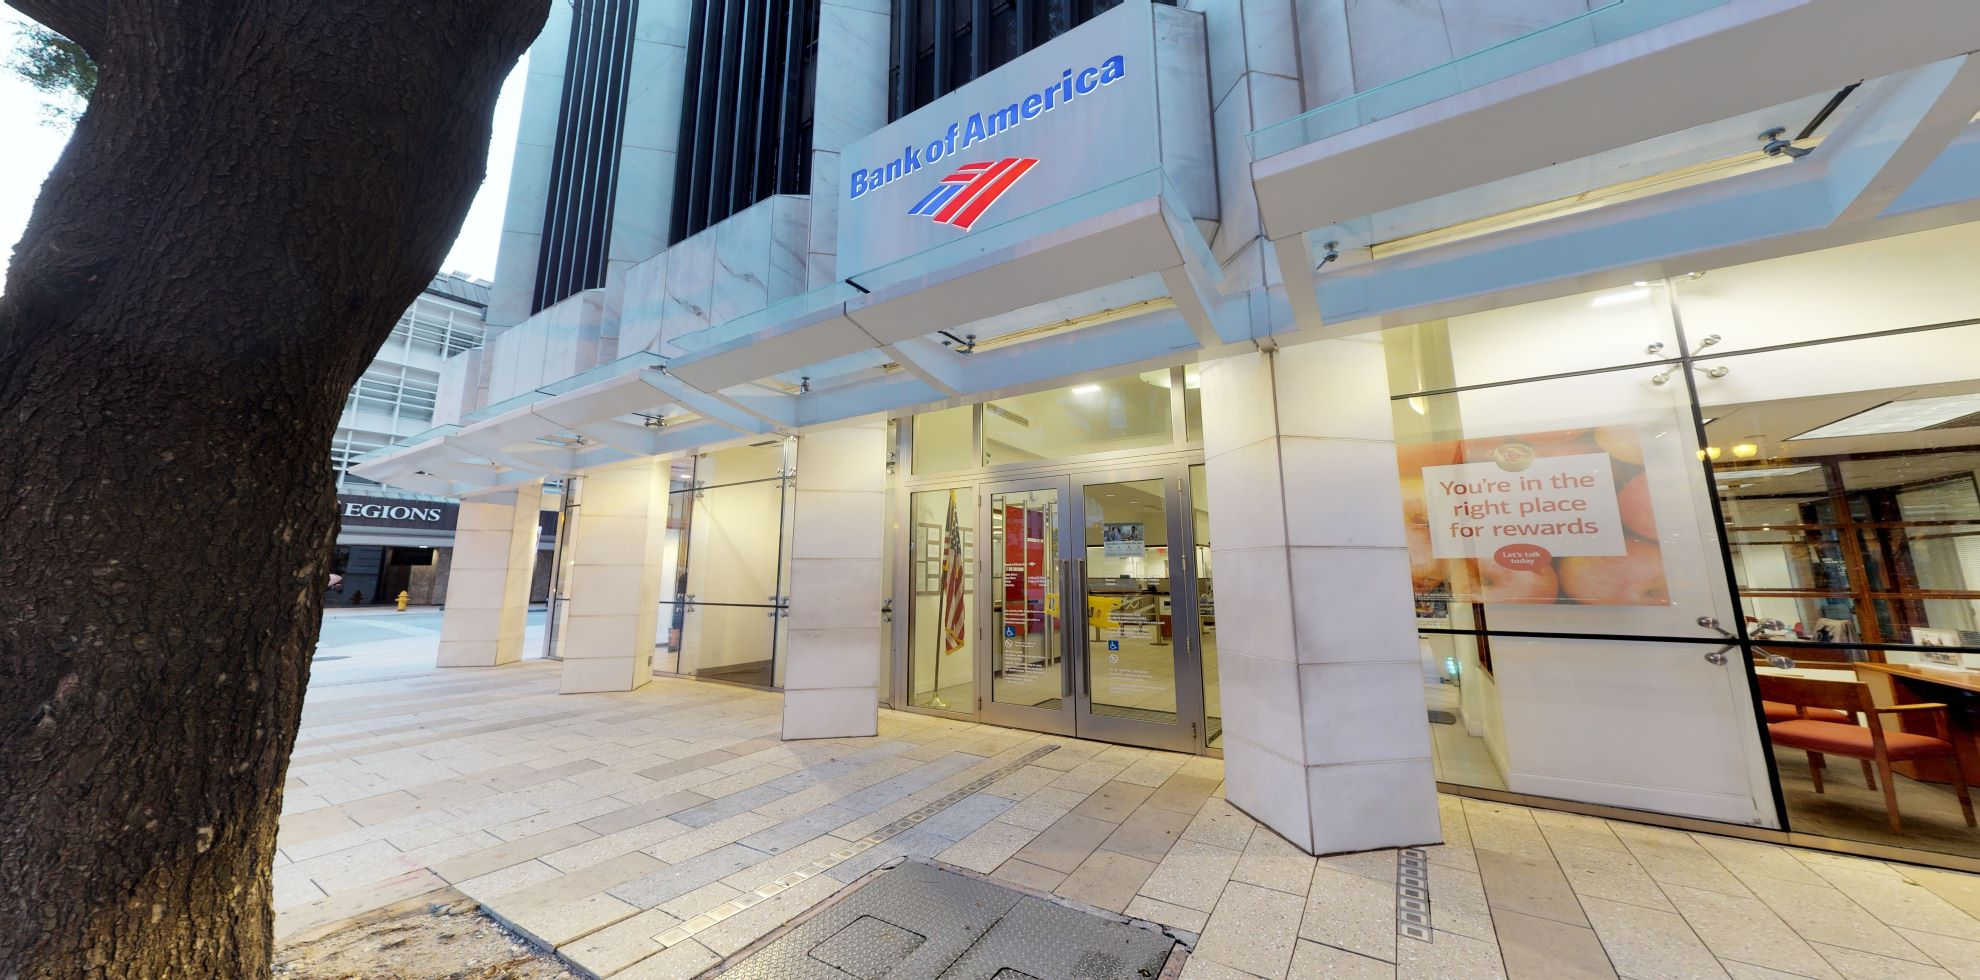 Bank of America financial center with walk-up ATM | 1 SE 3rd Ave, Miami, FL 33131